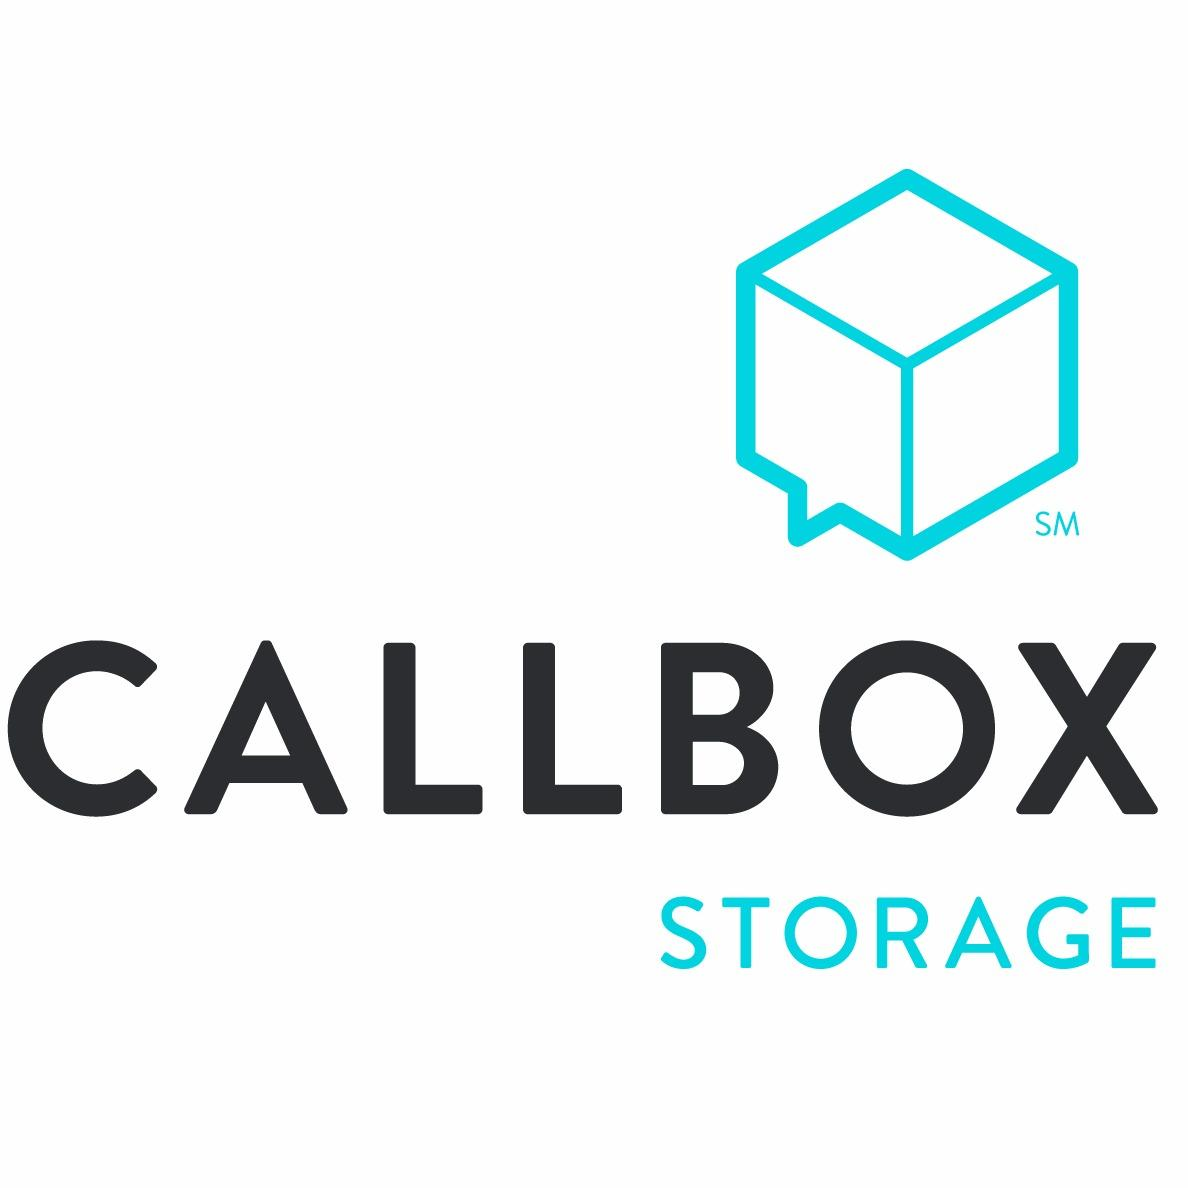 Callbox Storage - Dallas, TX 75225 - (972)225-5269 | ShowMeLocal.com